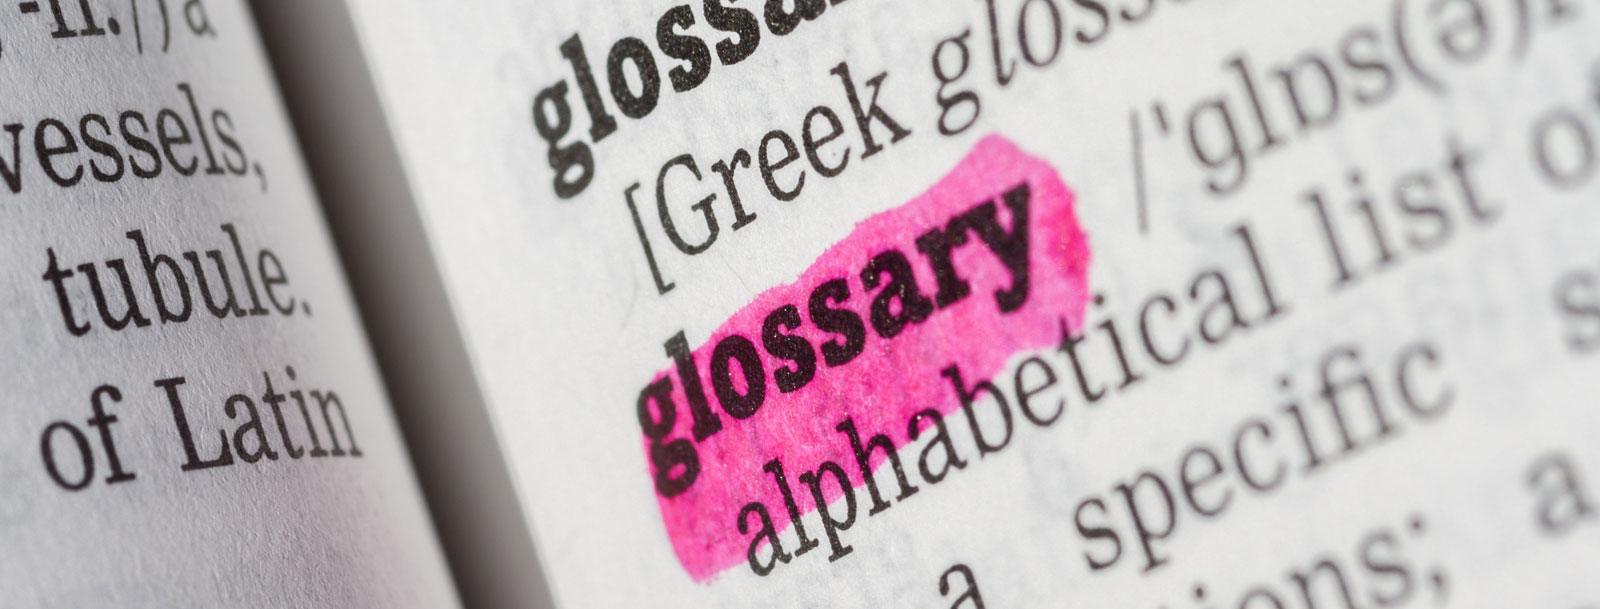 A glossary to help you understand the terminology at the senior living in Emporia